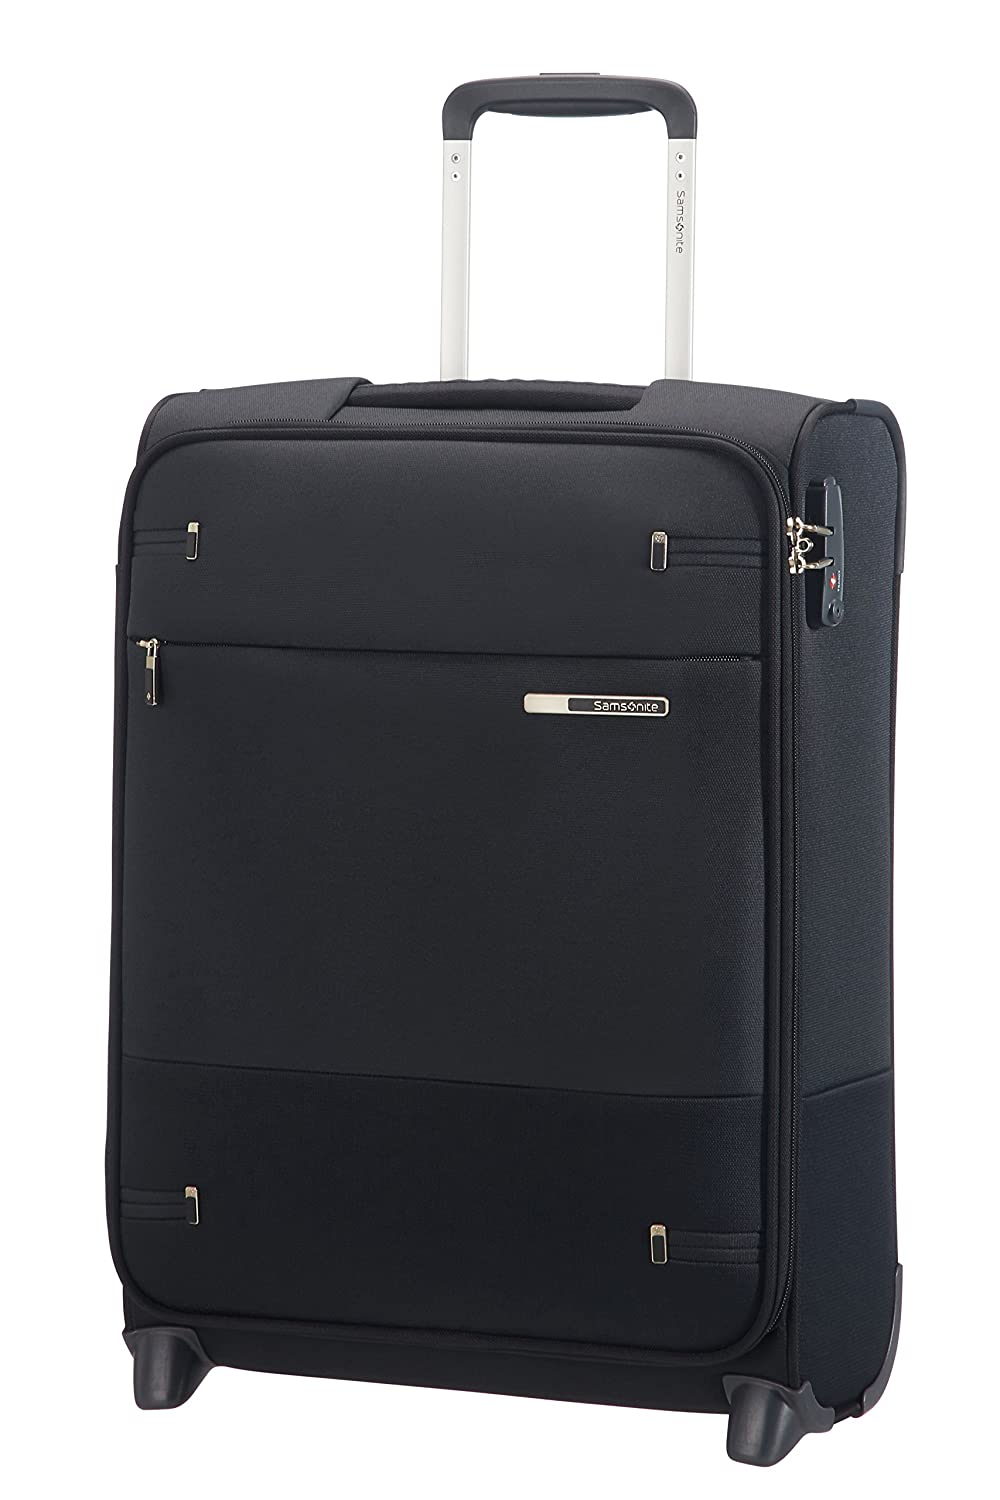 Samsonite Base Boost Maleta Negro Black x x cm  L